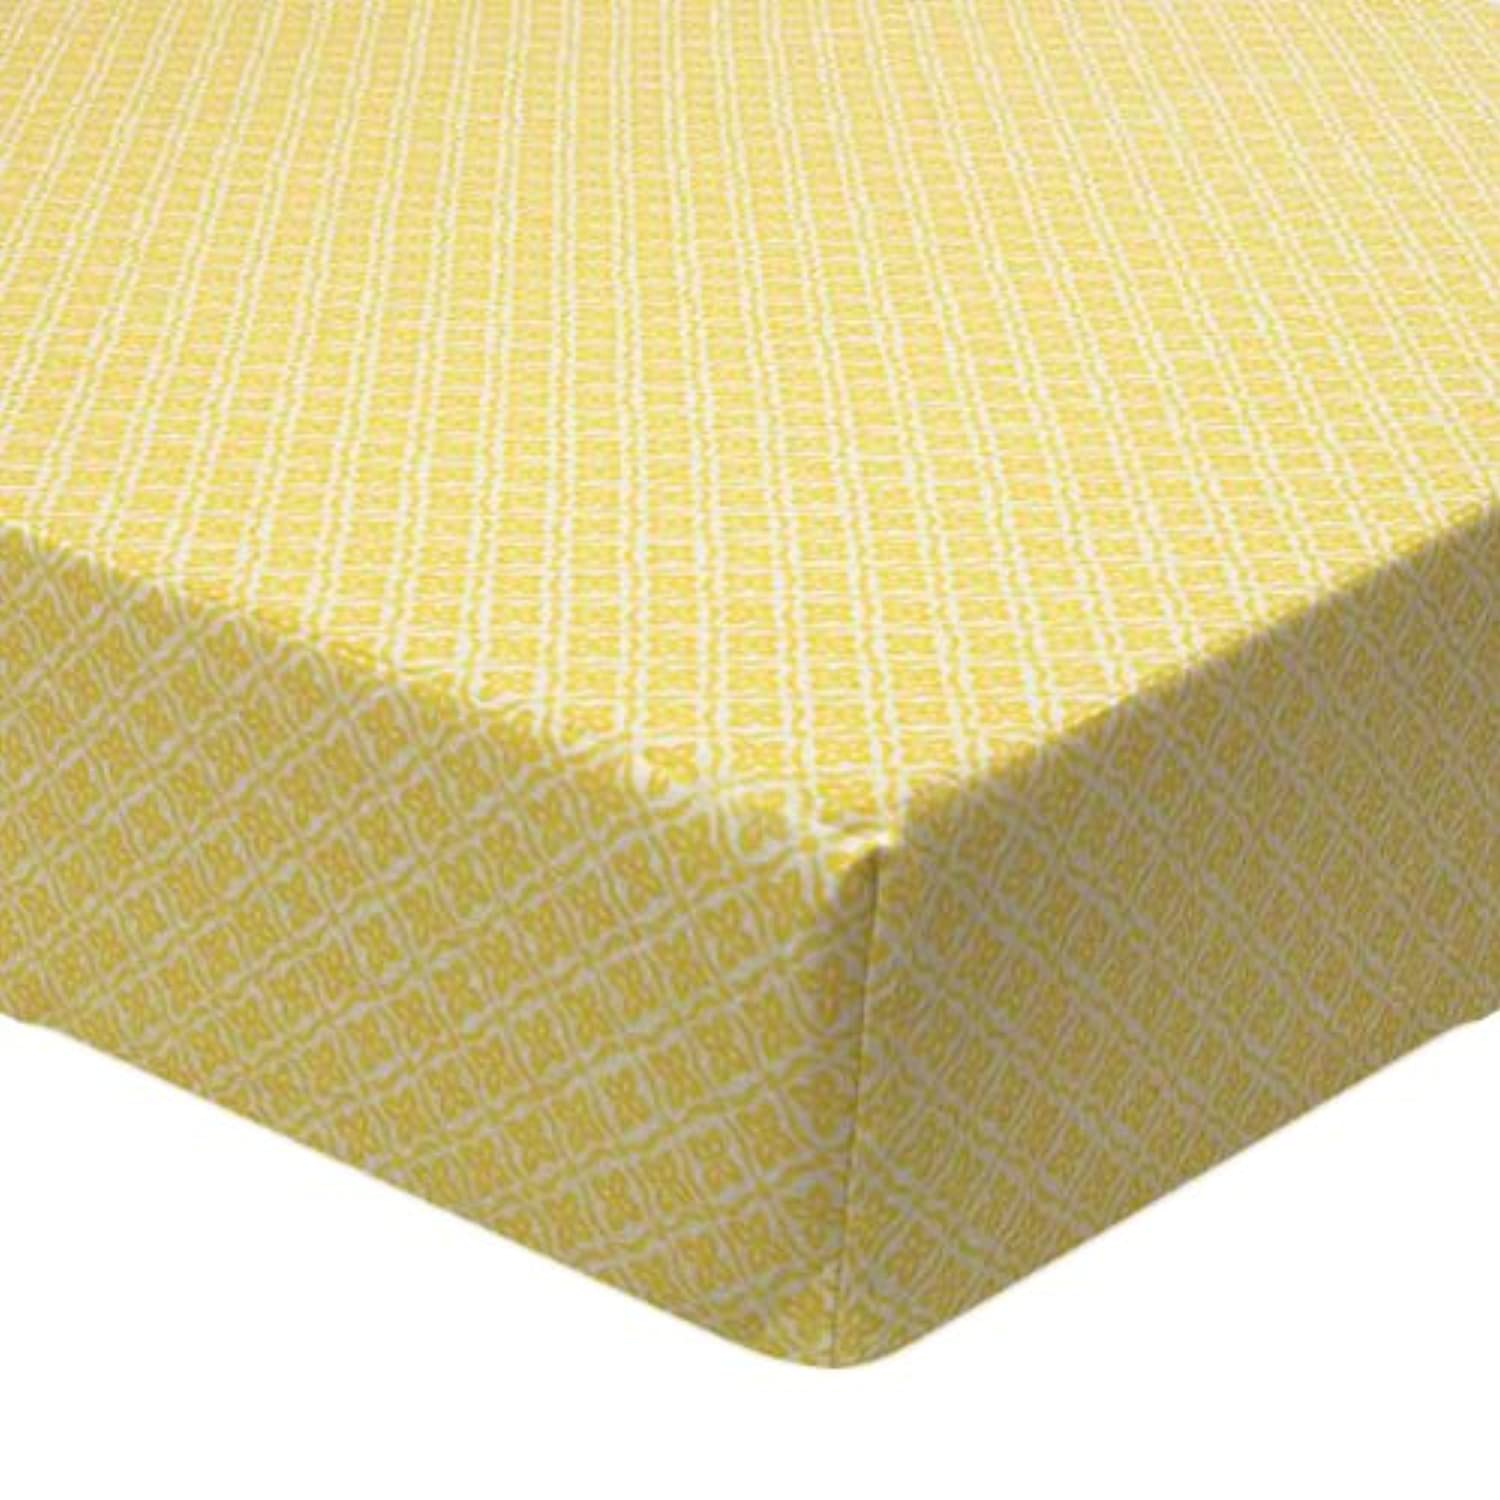 Sunshine Yellow Floral Fitted Crib Sheet by True Baby by True Baby